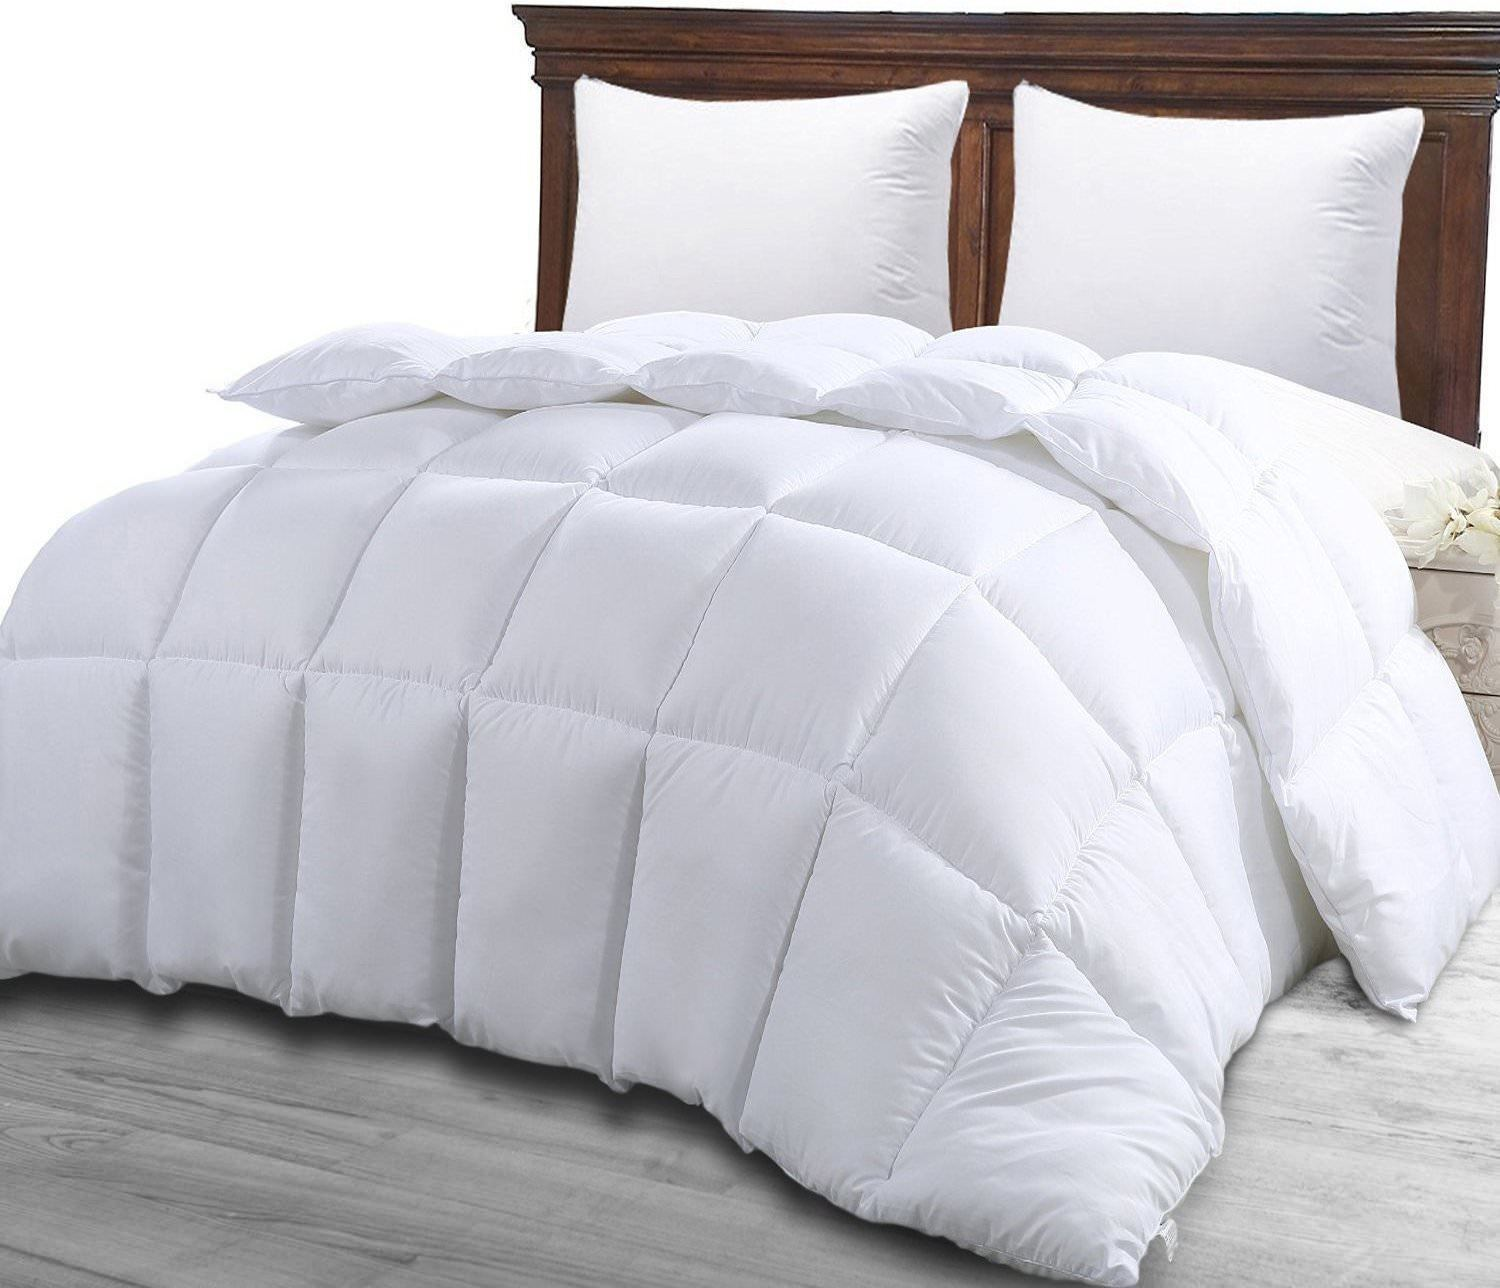 Primary image for Queen Comforter Duvet Insert White Soft Down Alternative Comforter Corner Tabs